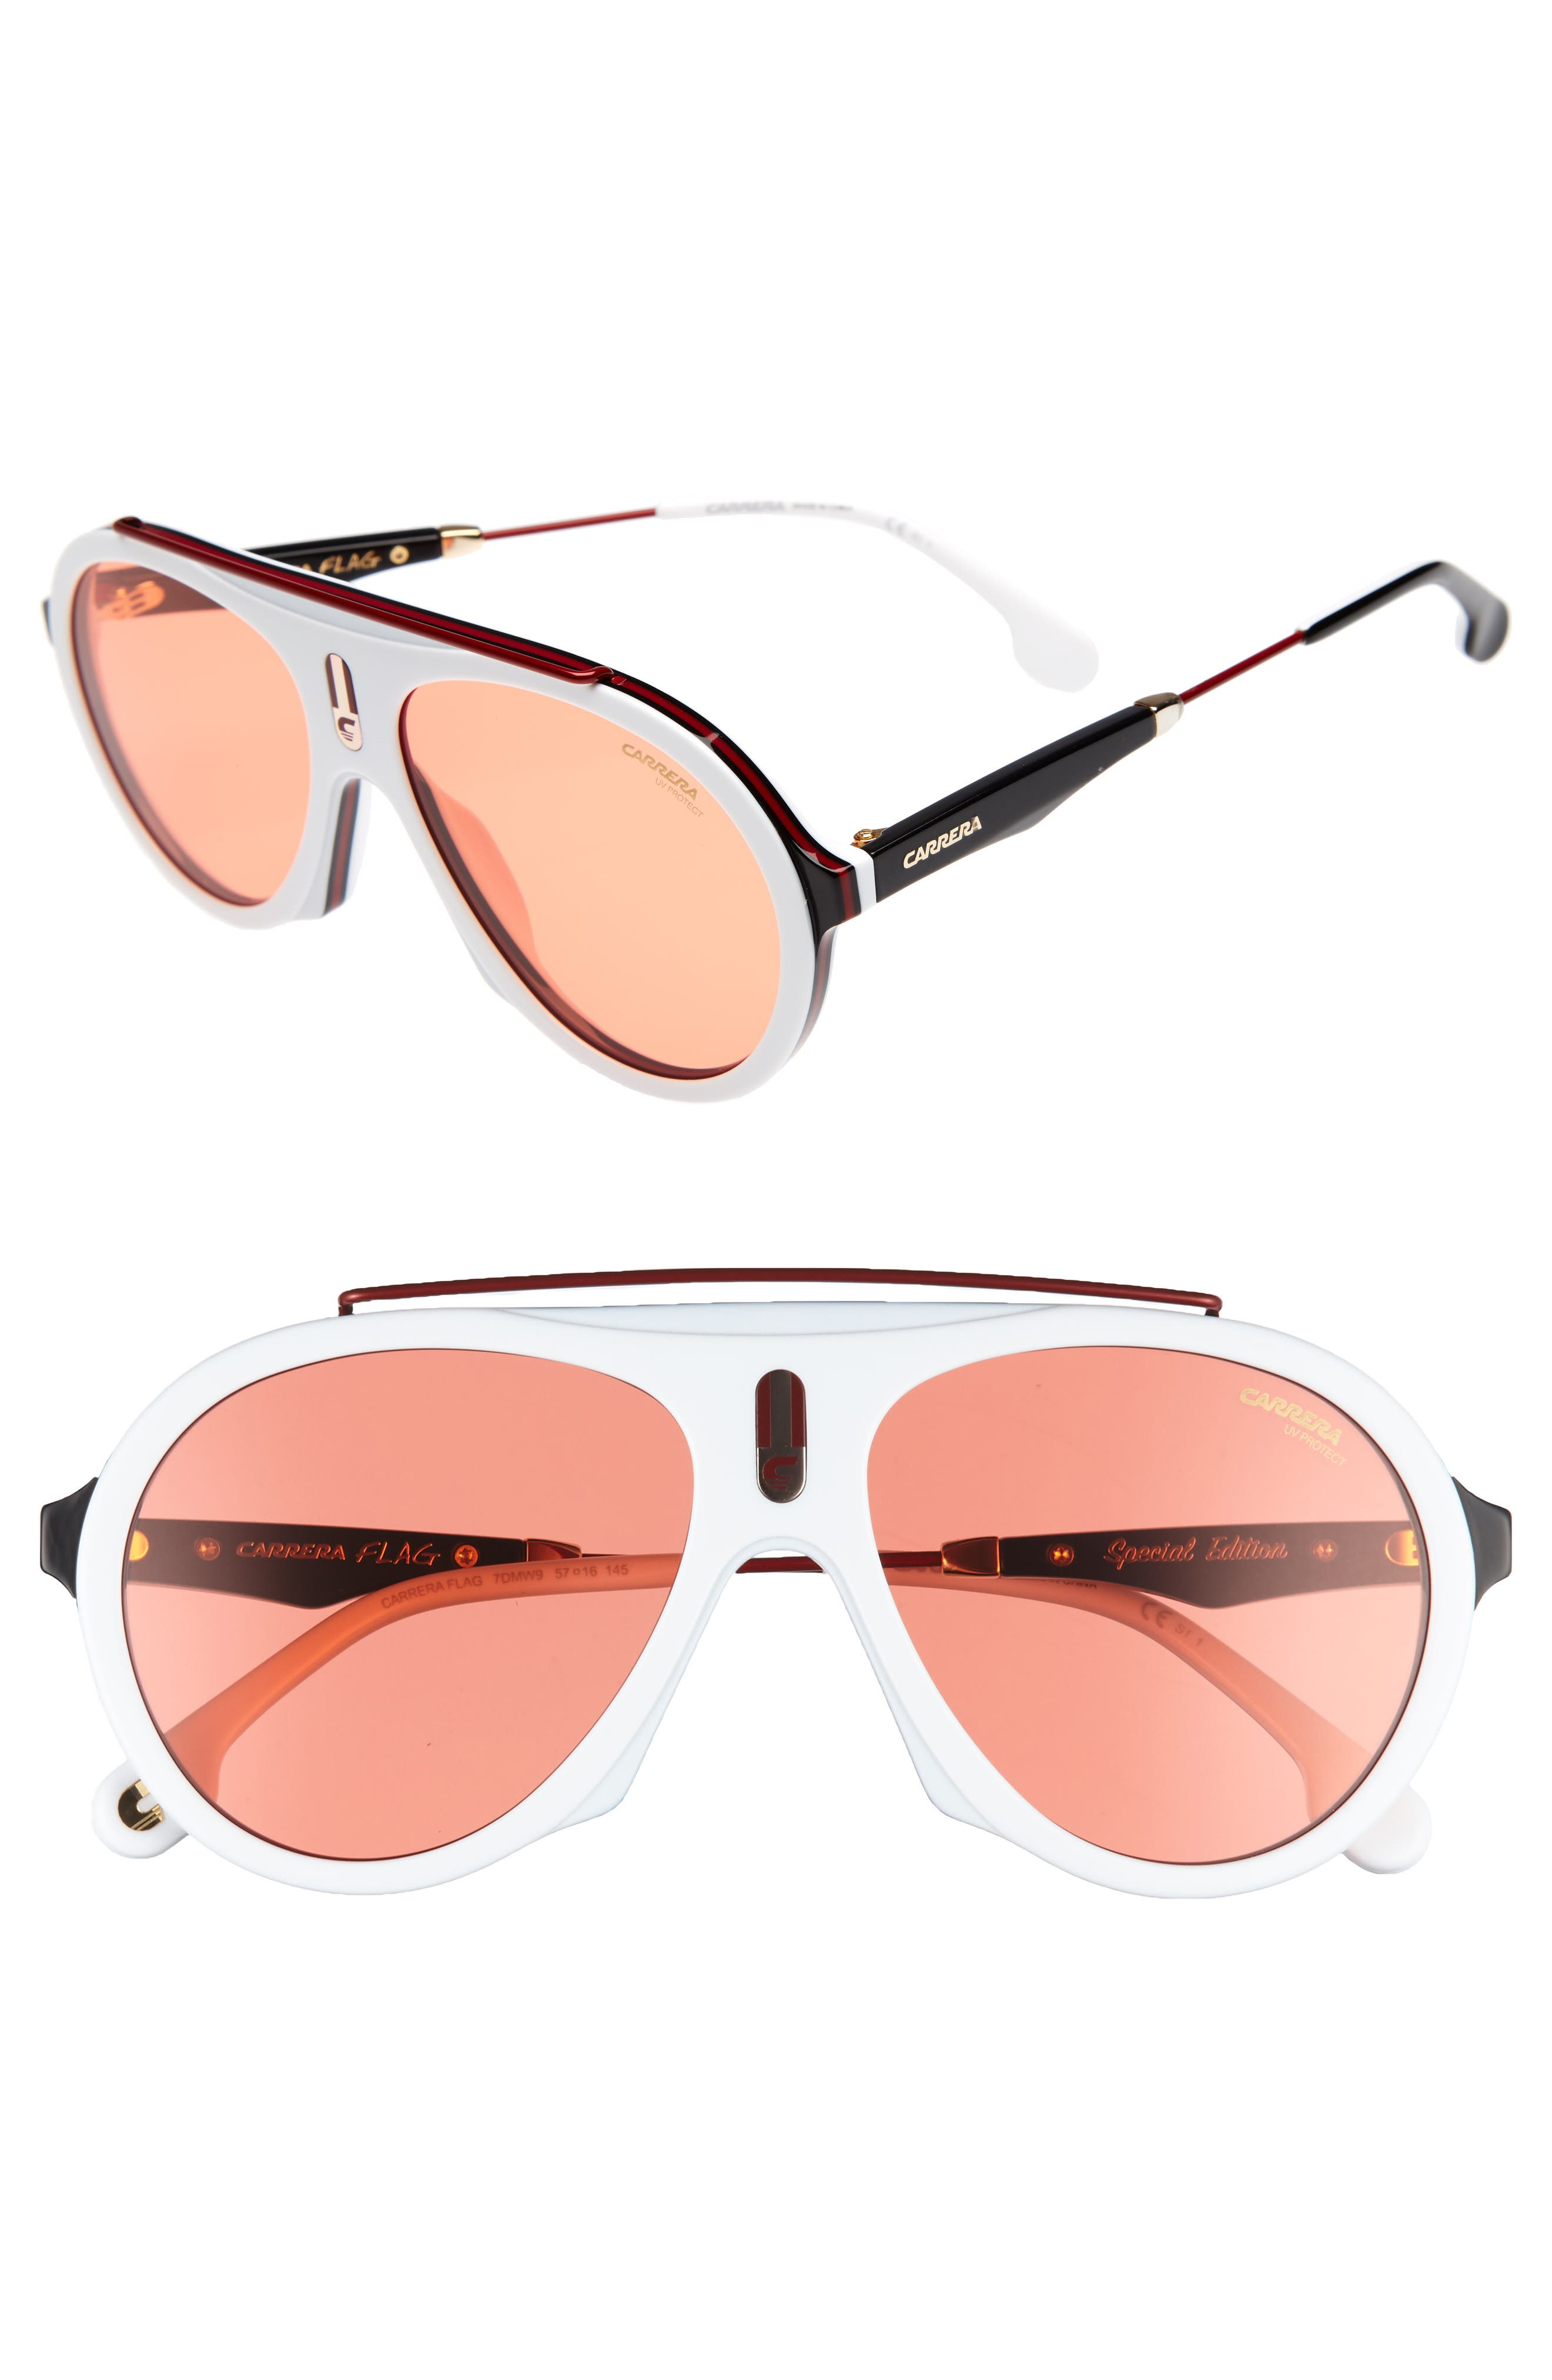 Carrera Flag 57mm Mirrored Pilot Sunglasses,                         Main,                         color, White/ Red